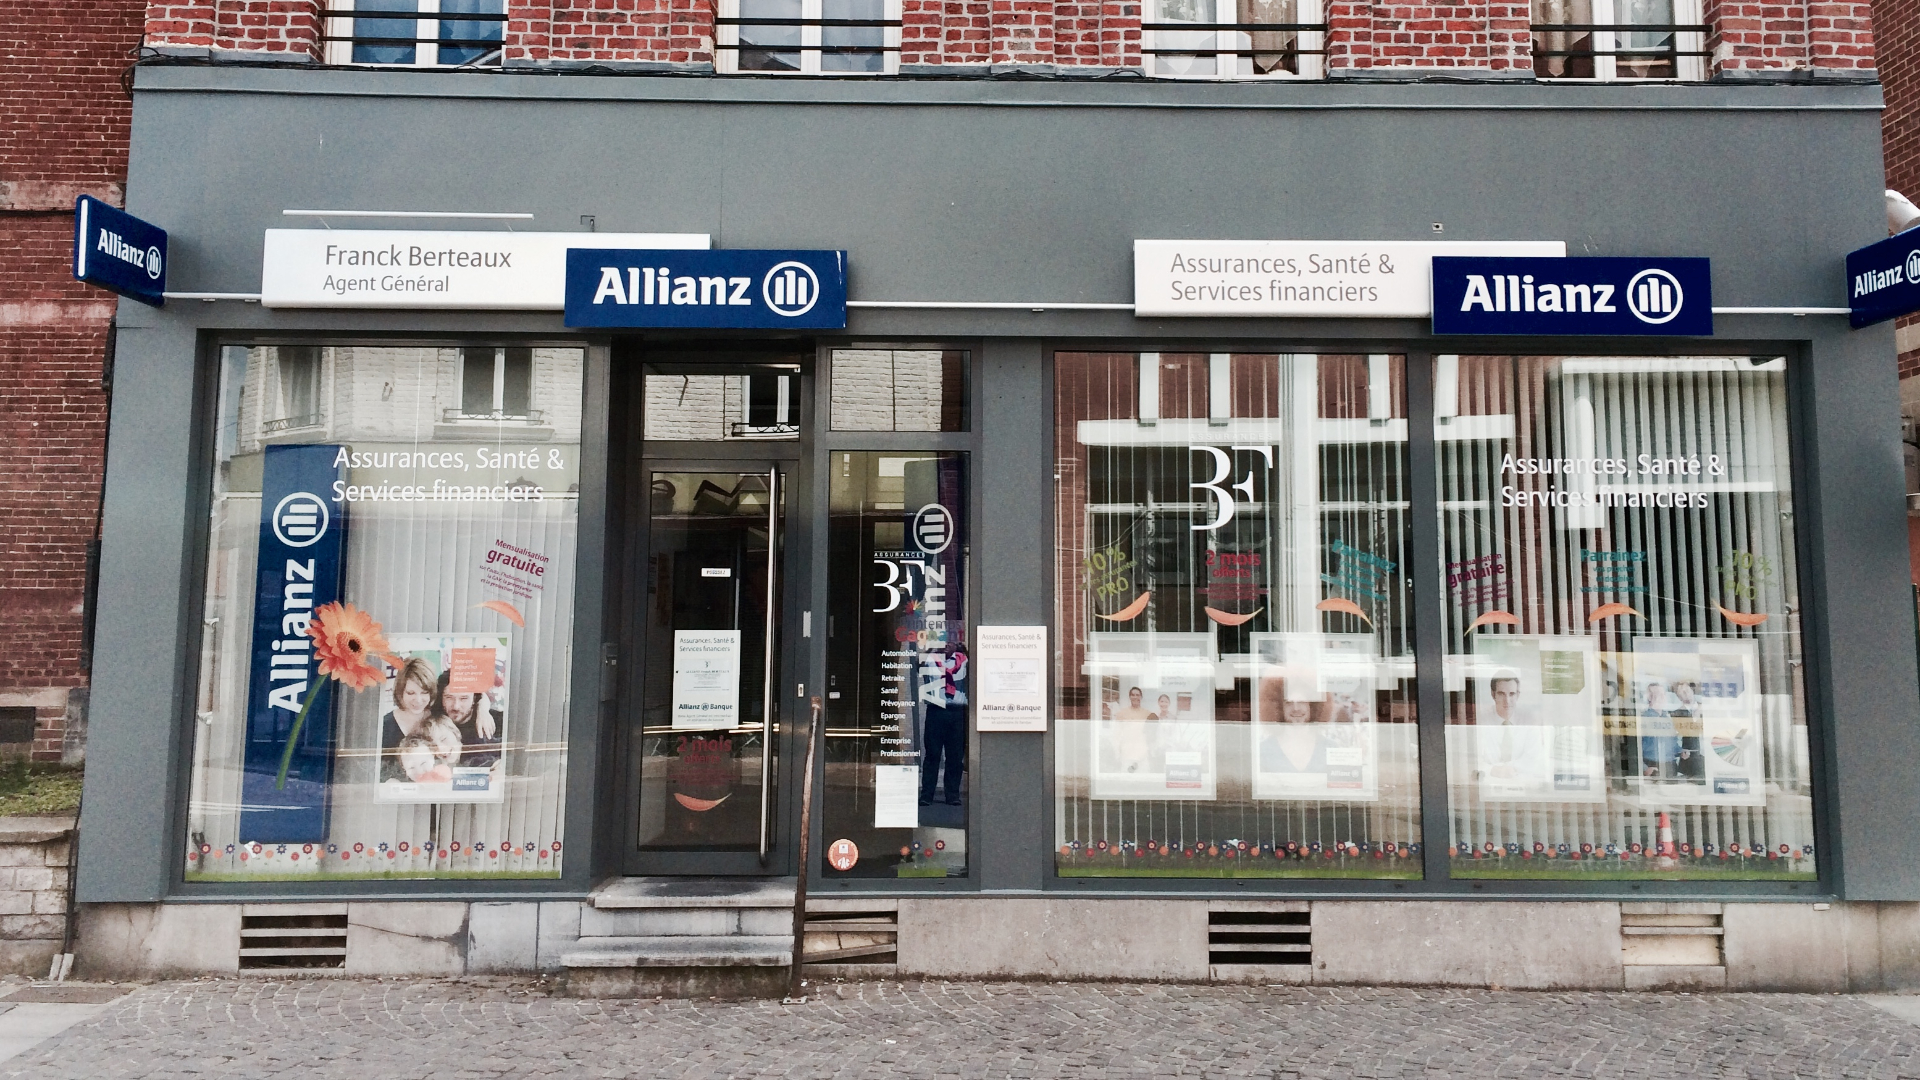 Allianz Fourmies - BERTEAUX & WITTRANT